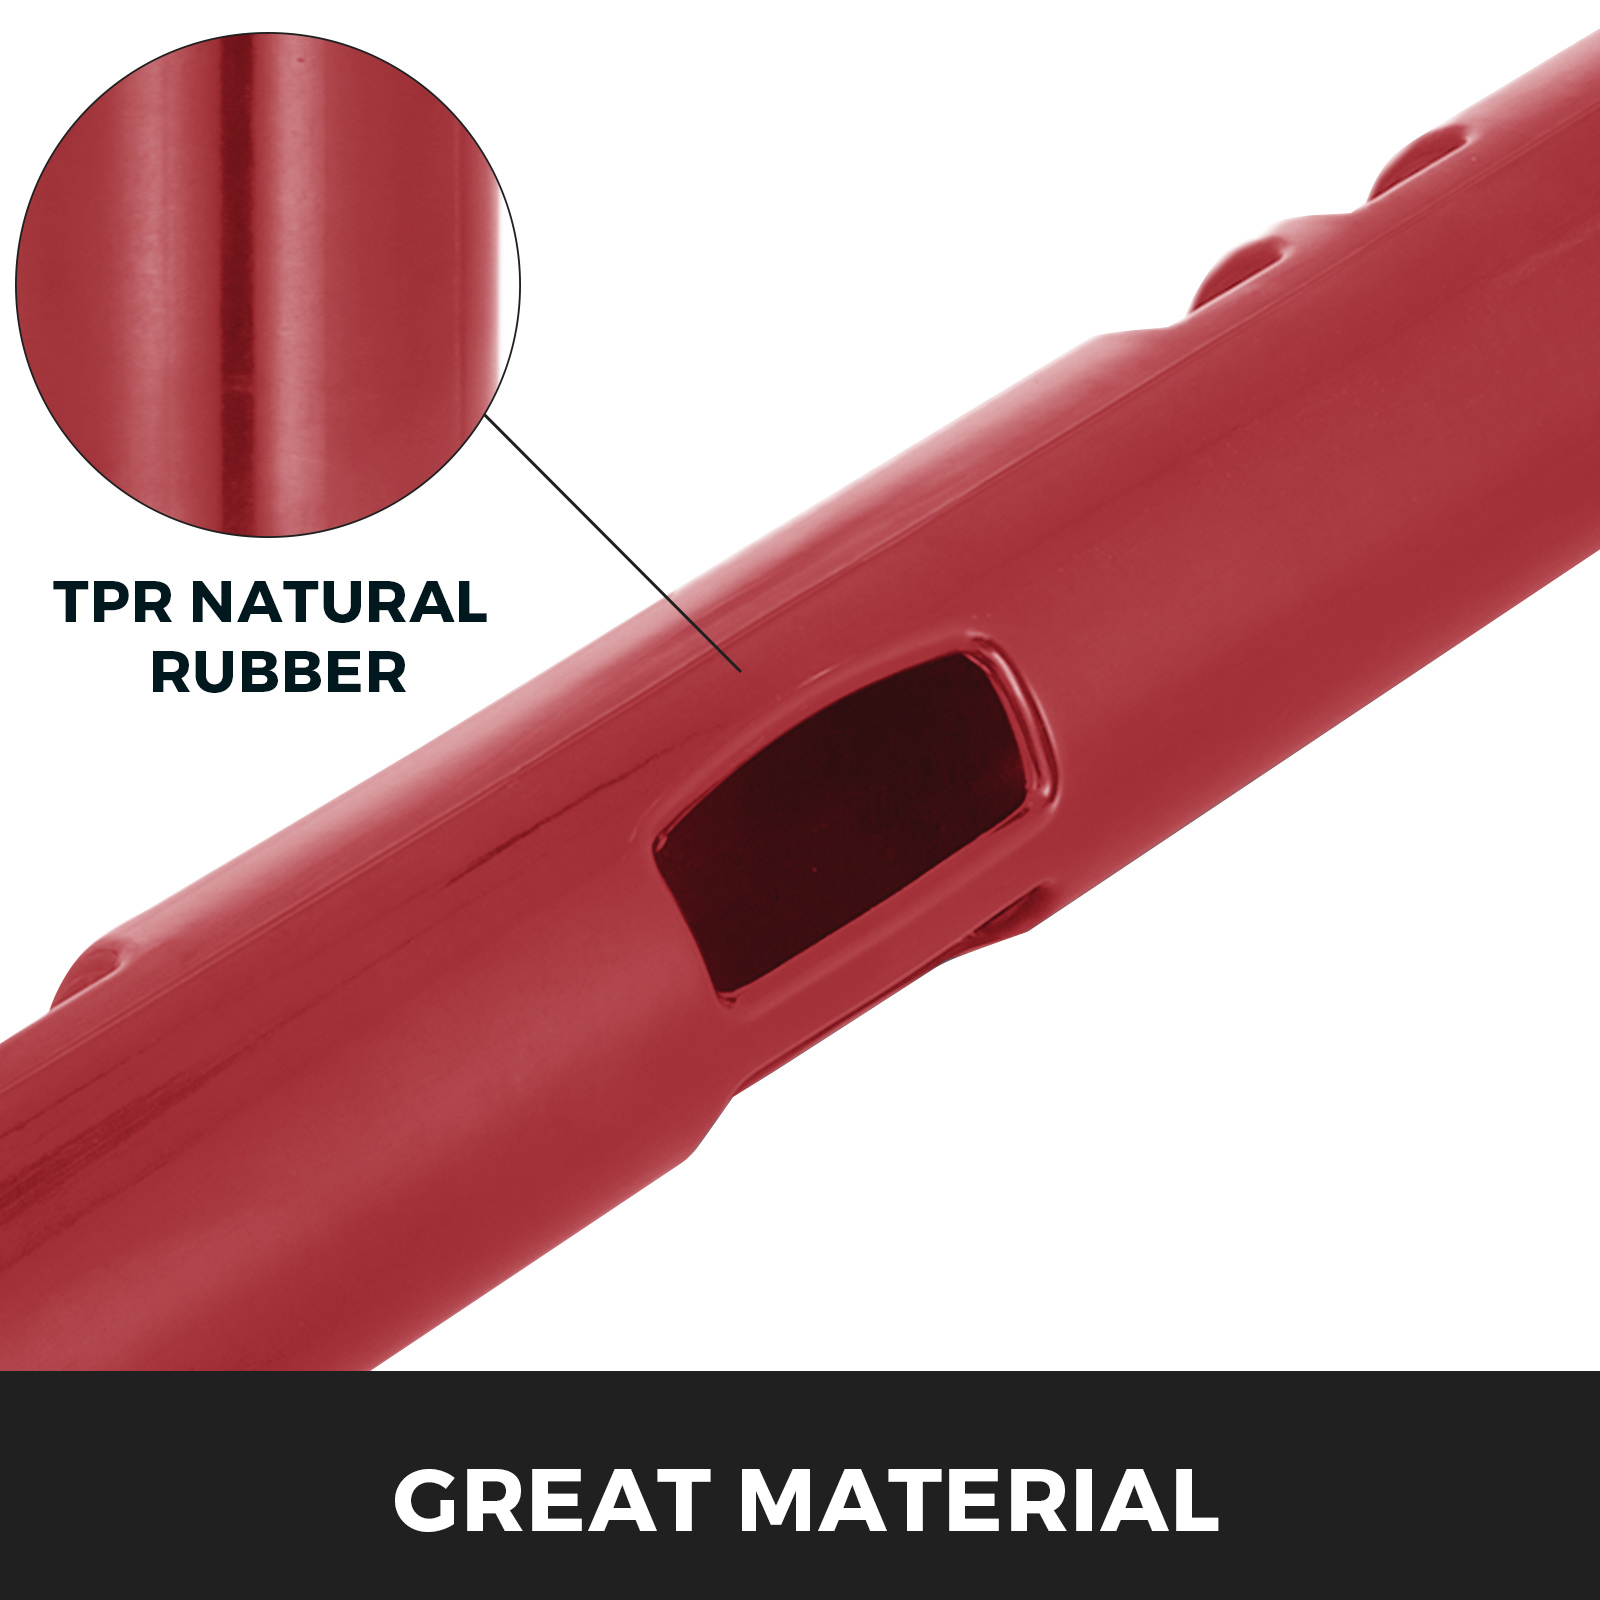 Vipr-Fitpro-Fitness-Tube-Loaded-Movement-Training-weightlifting-4-6-8-10-12-Kg thumbnail 74